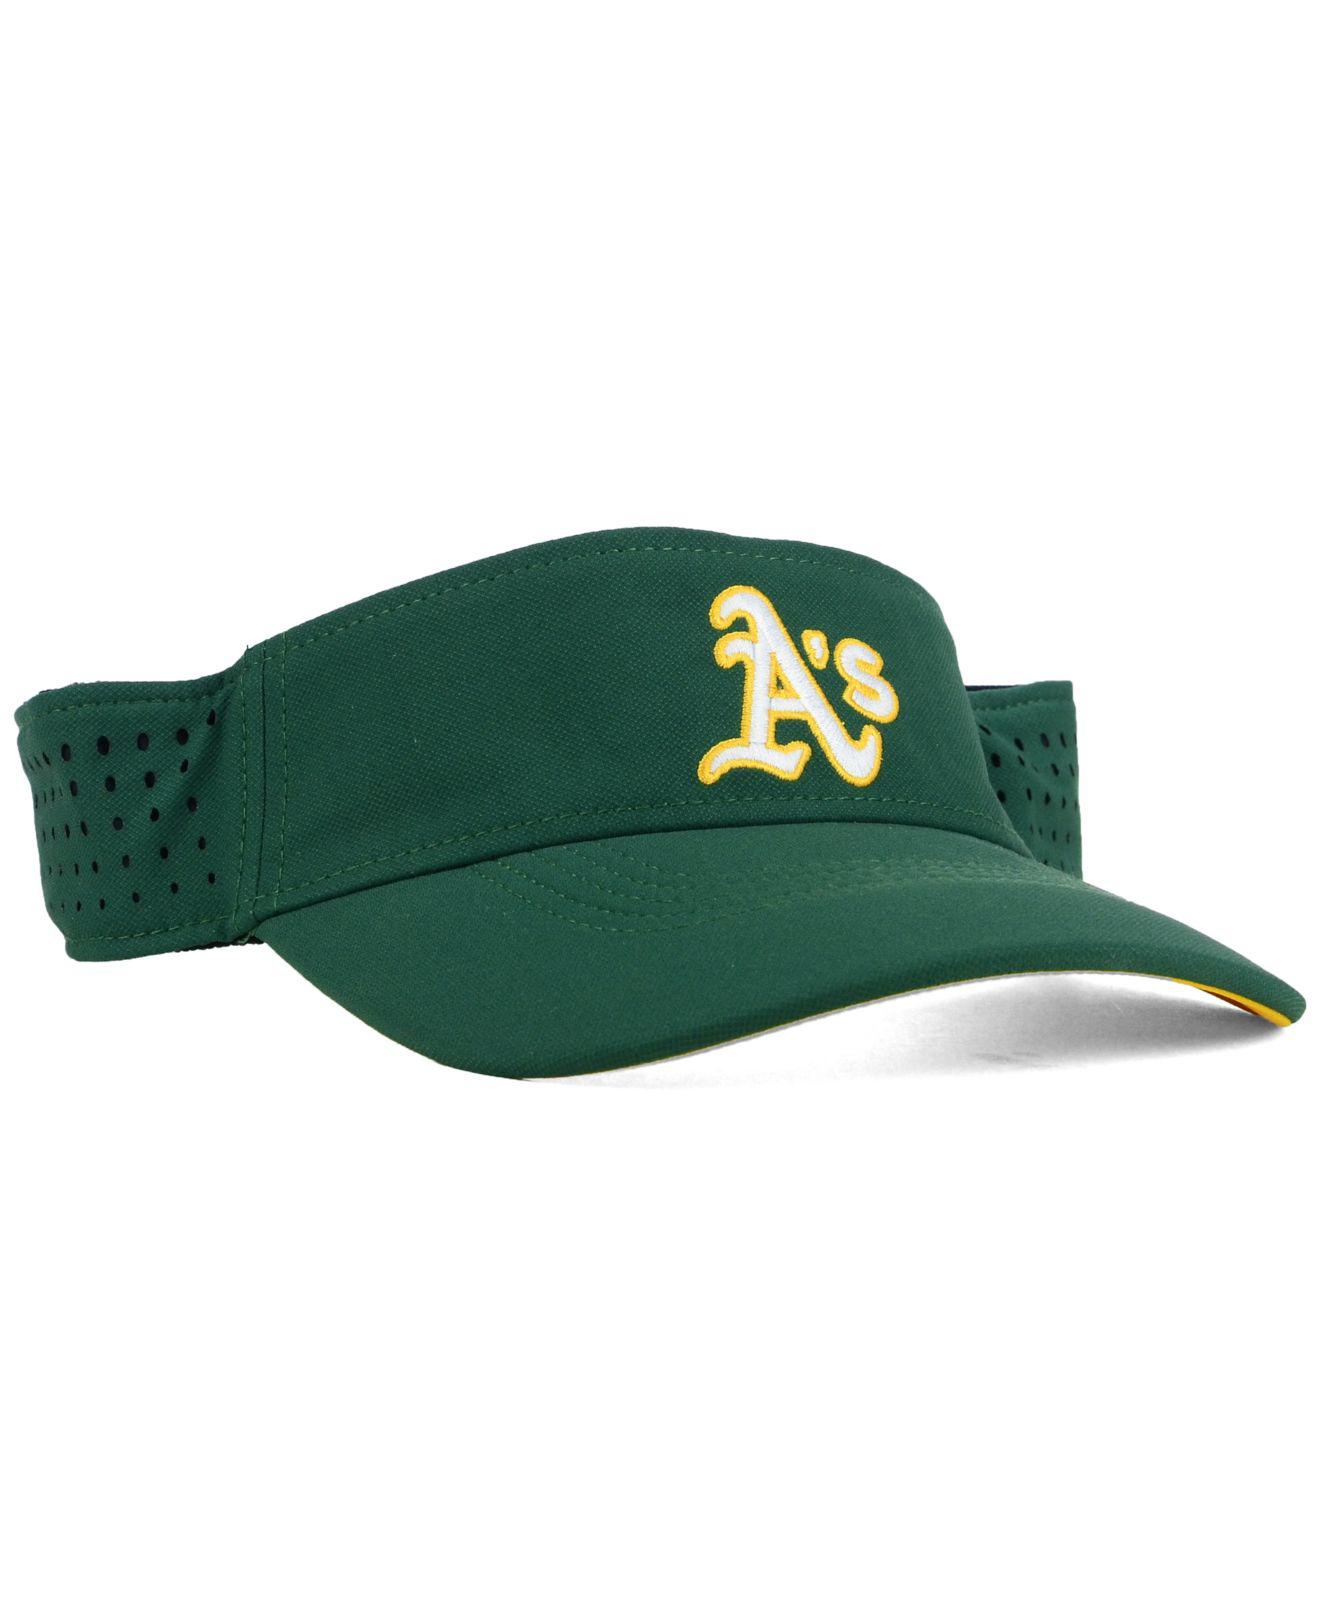 7c8b4f64b3c Lyst - Nike Oakland Athletics Vapor Visor in Green for Men